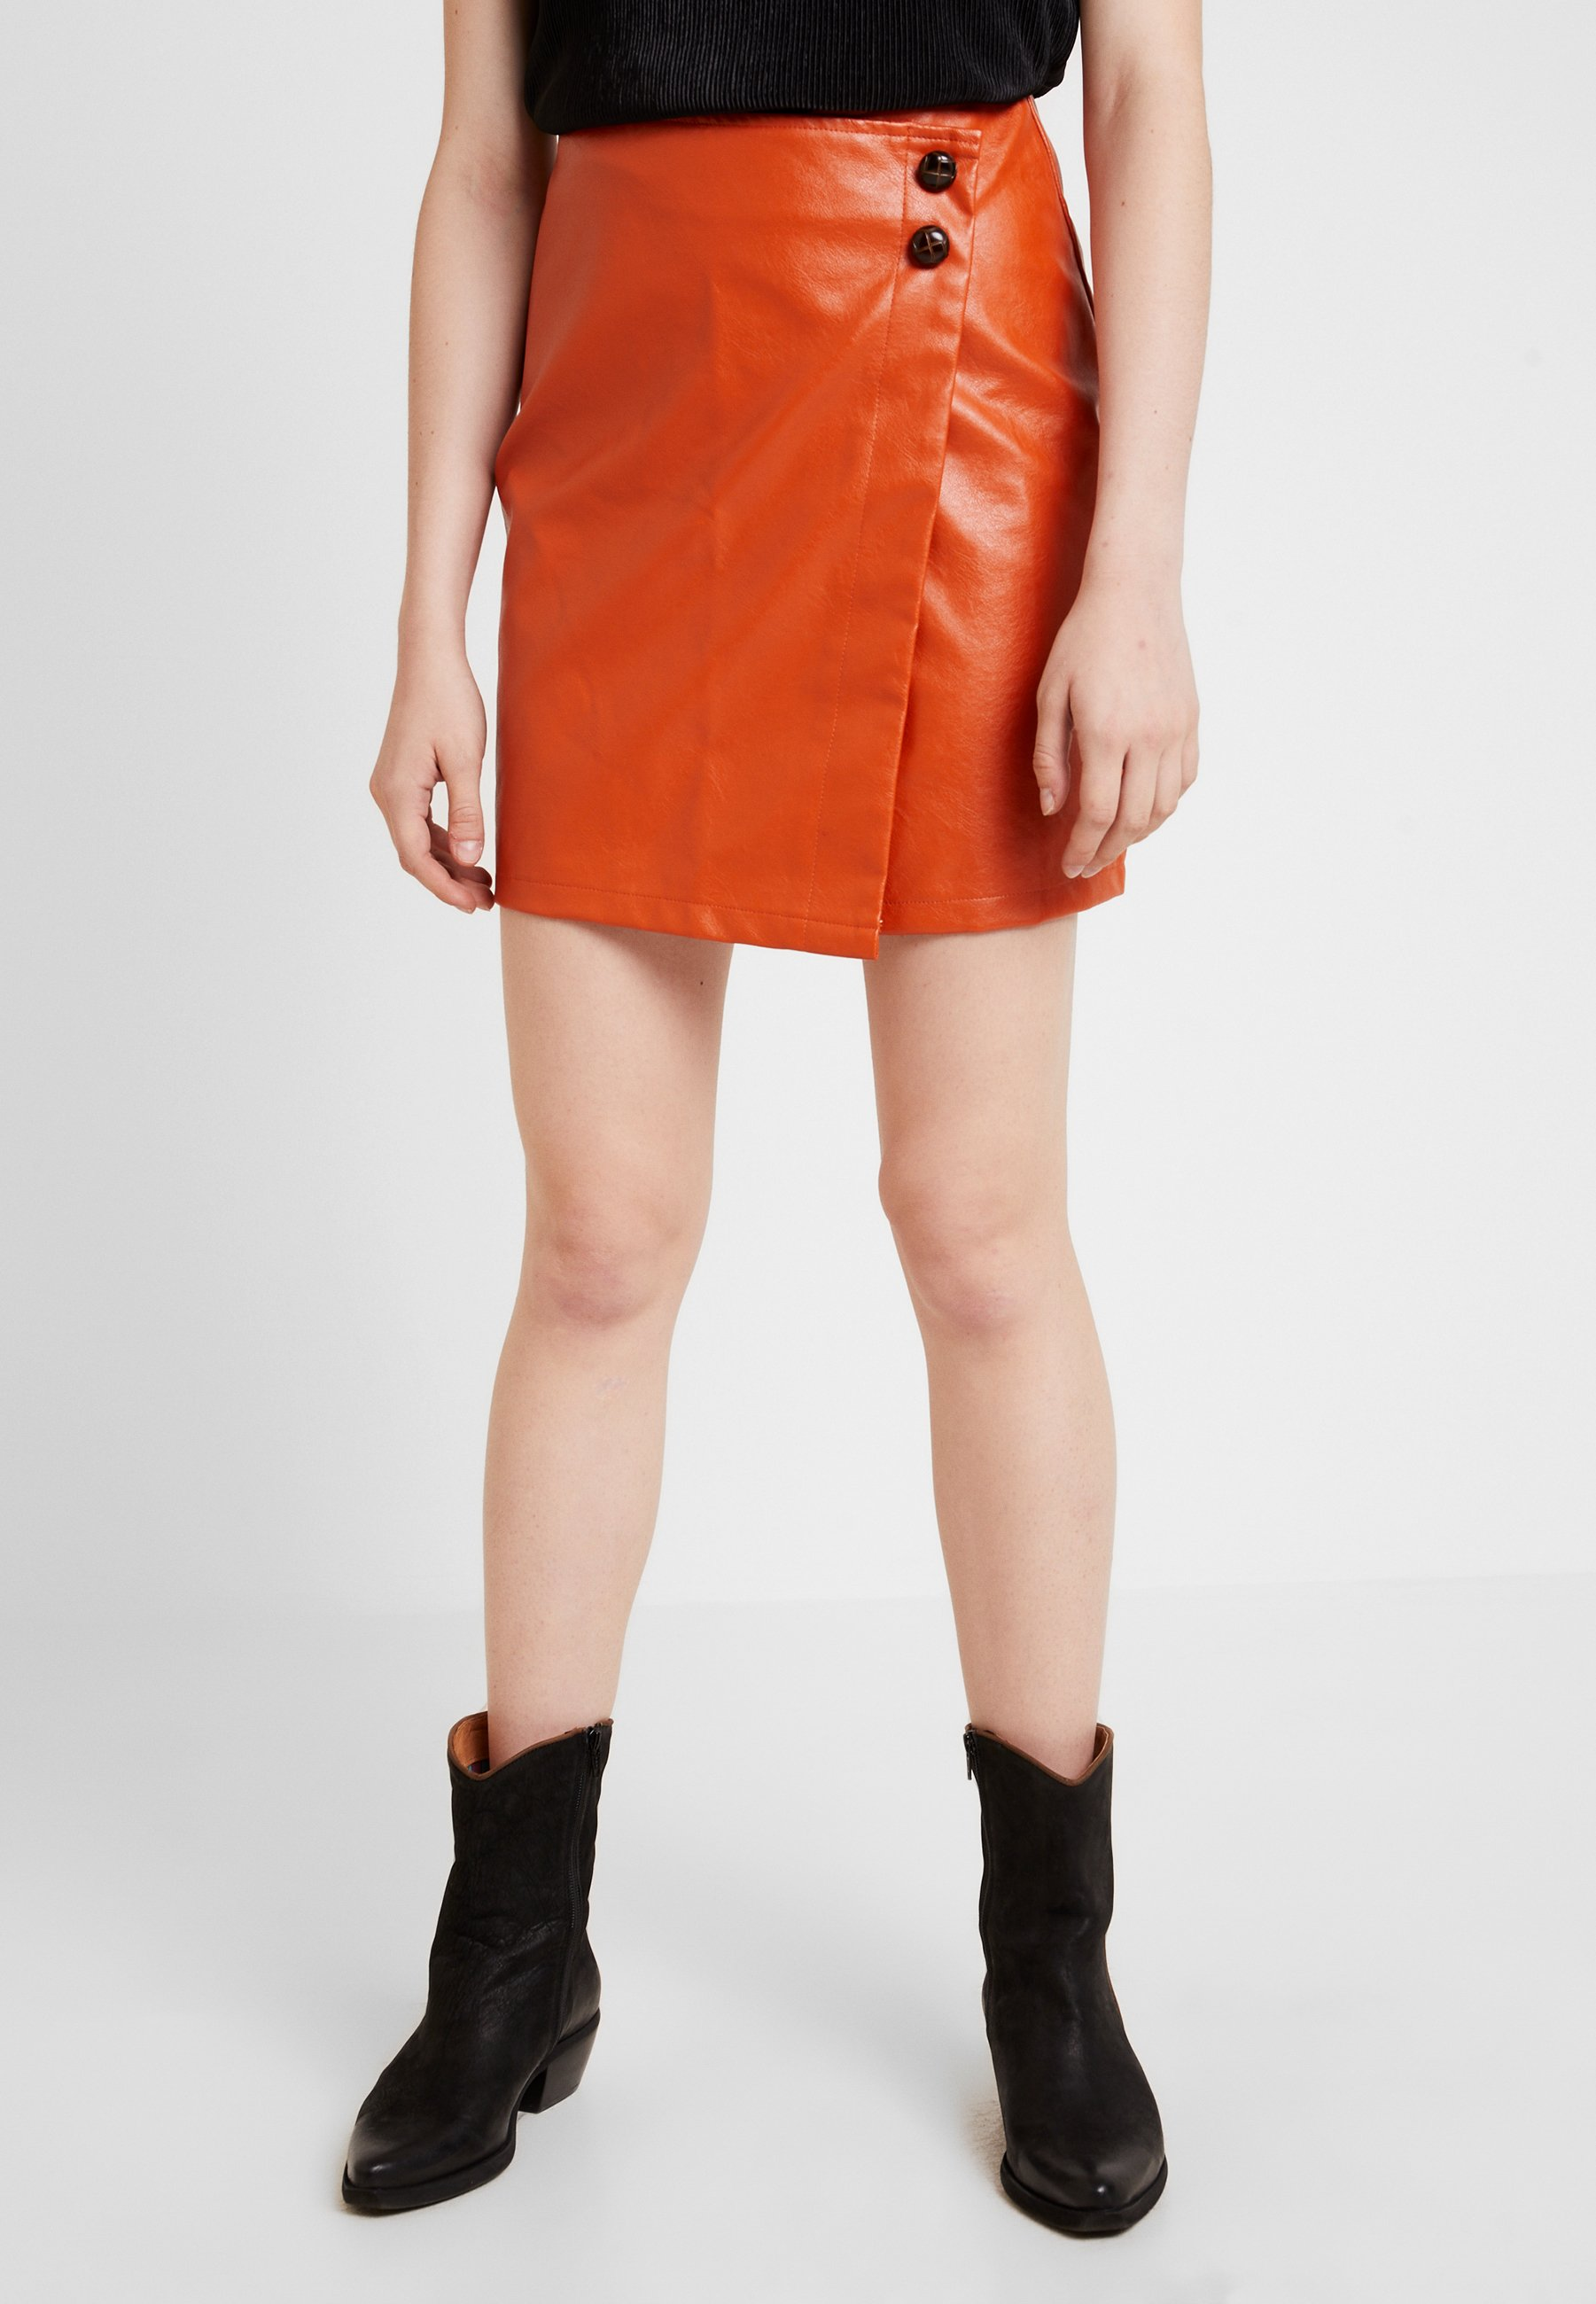 Wrap Detail Mini Missguided Over Rust Button SkirtJupe Portefeuille UpqzSMV